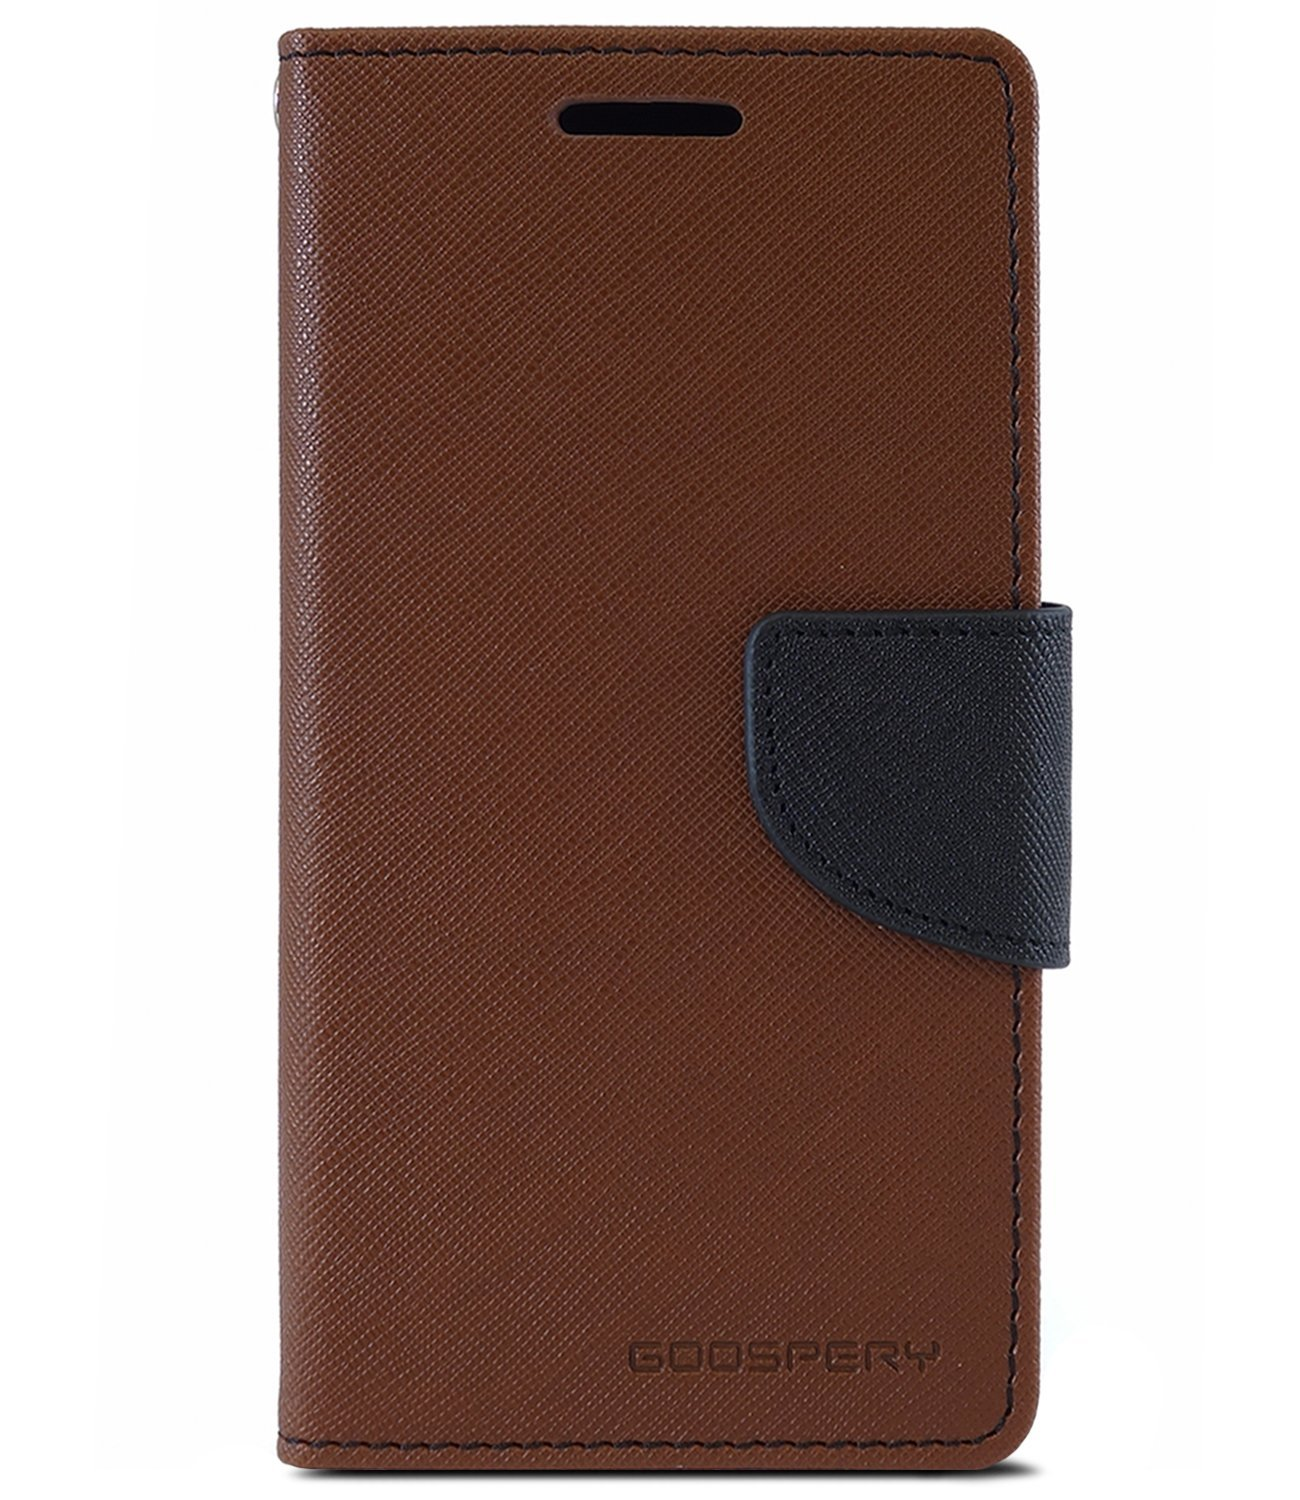 Galaxy S3 Mini Case Drop Protection Goospery Fancy Iphone 6 Plus 6s Diary Brown Black Wallet Pu Saffiano Leather Id Card Slots Cash Slot Stand Flip Cover